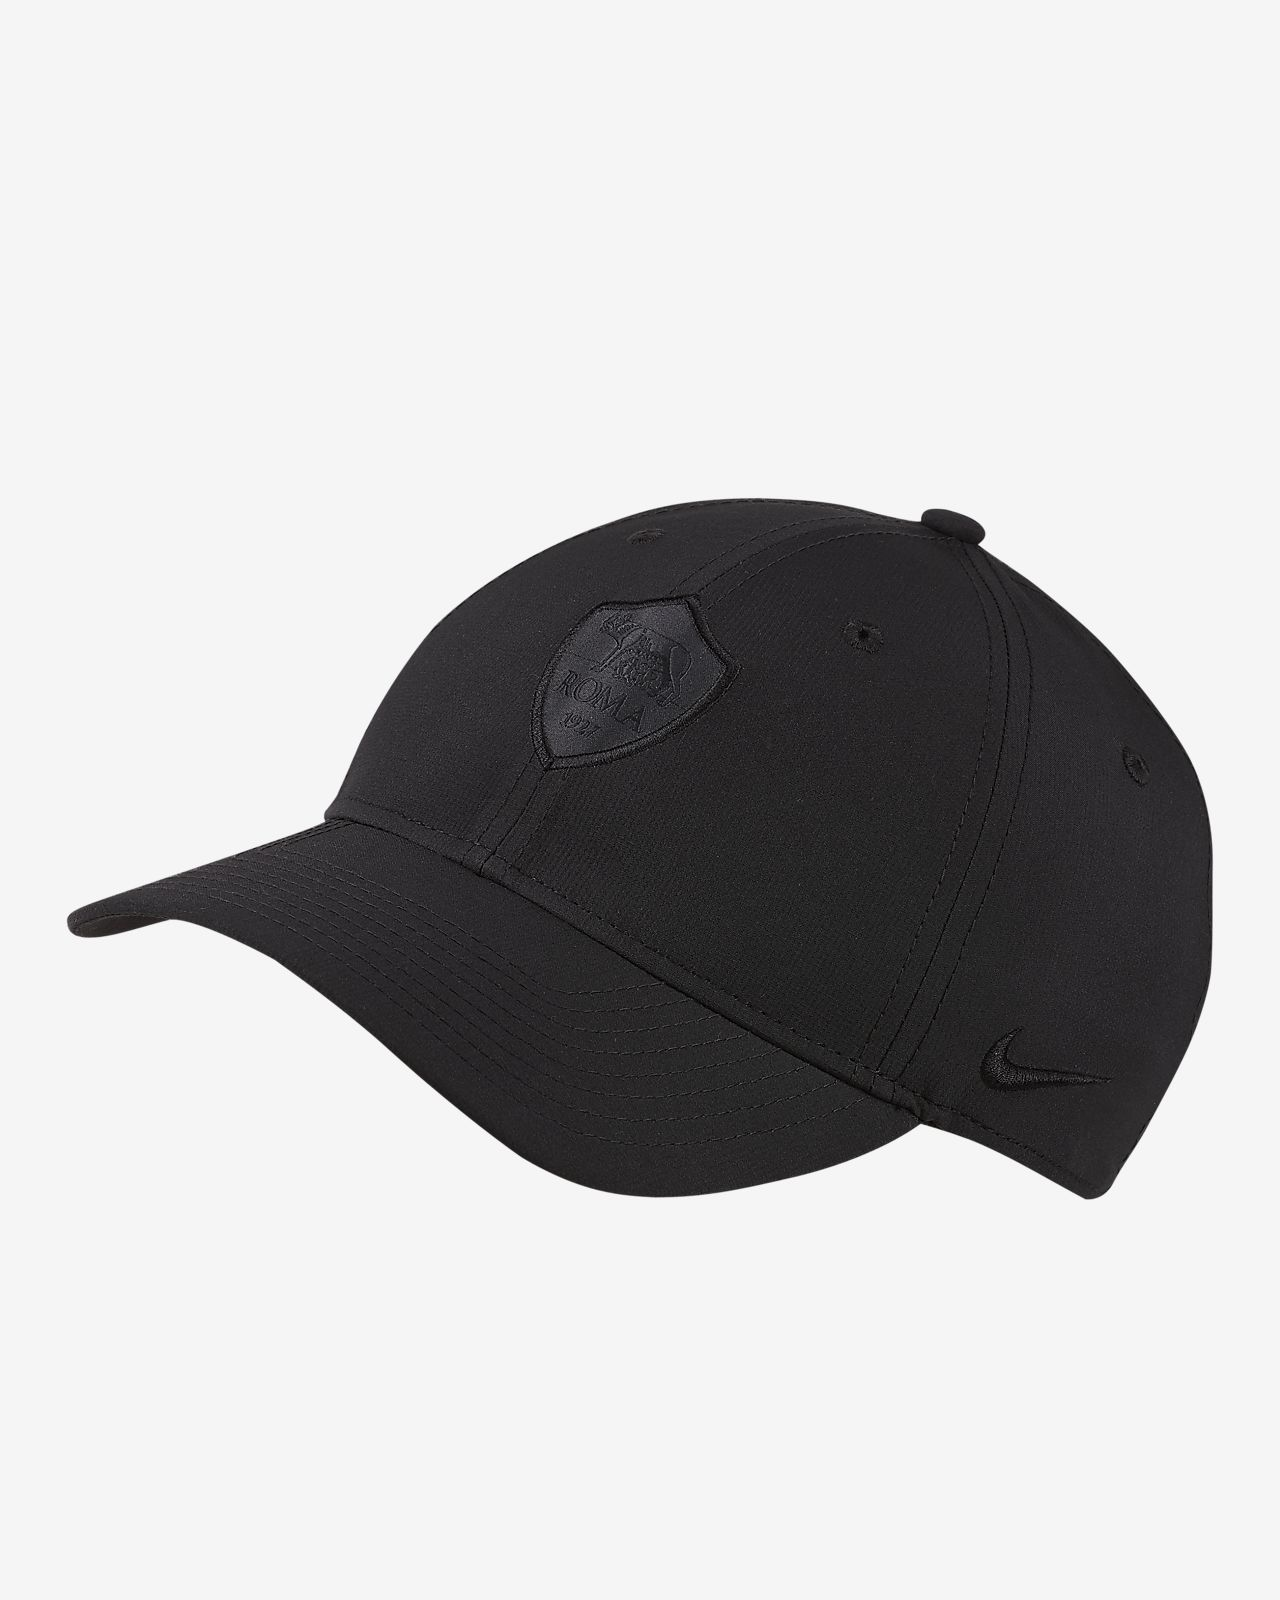 6b19ded3c Nike Dri-FIT A.S. Roma Legacy91 Adjustable Hat